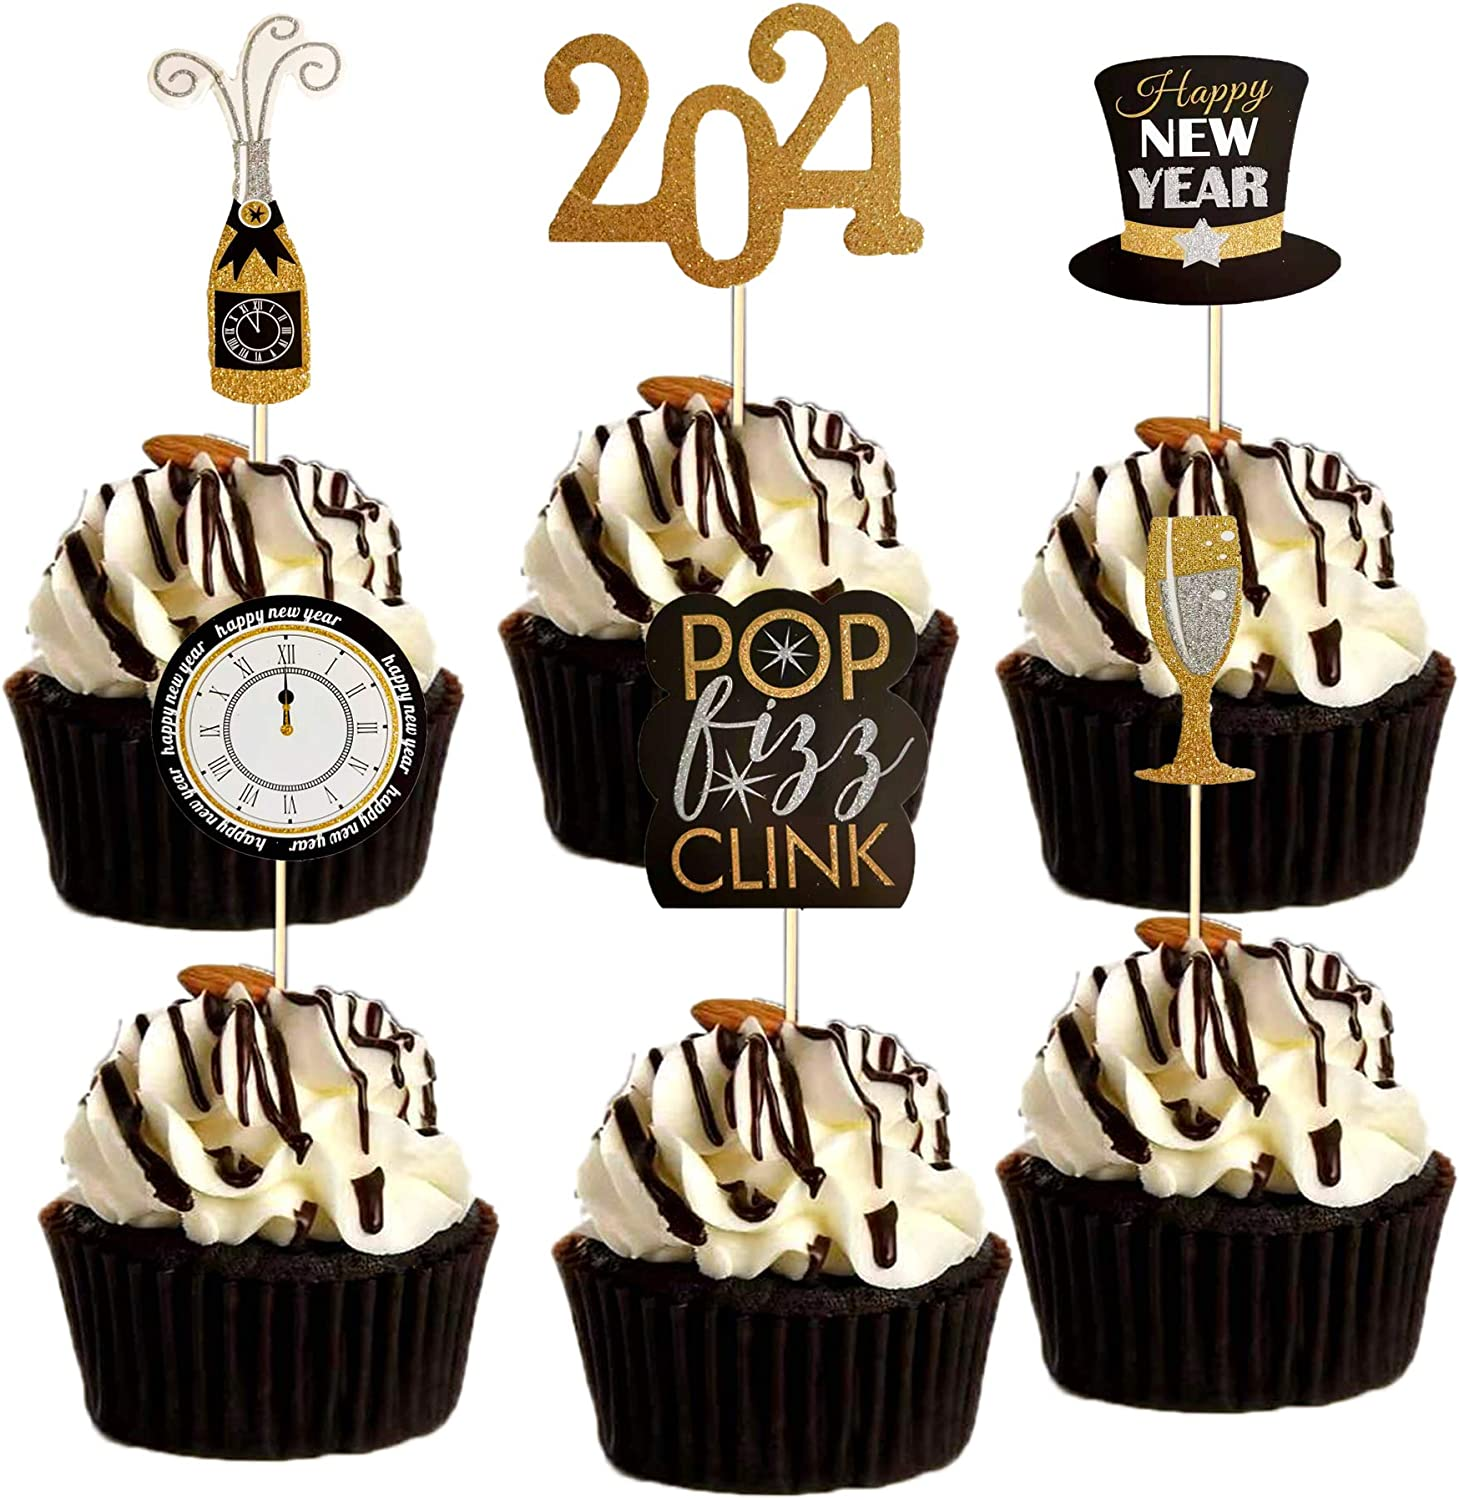 36PCS Happy New Year 2021 Cupcake Toppers - Gold Glitter Cake Dessert Decorations for New Year Eve Party